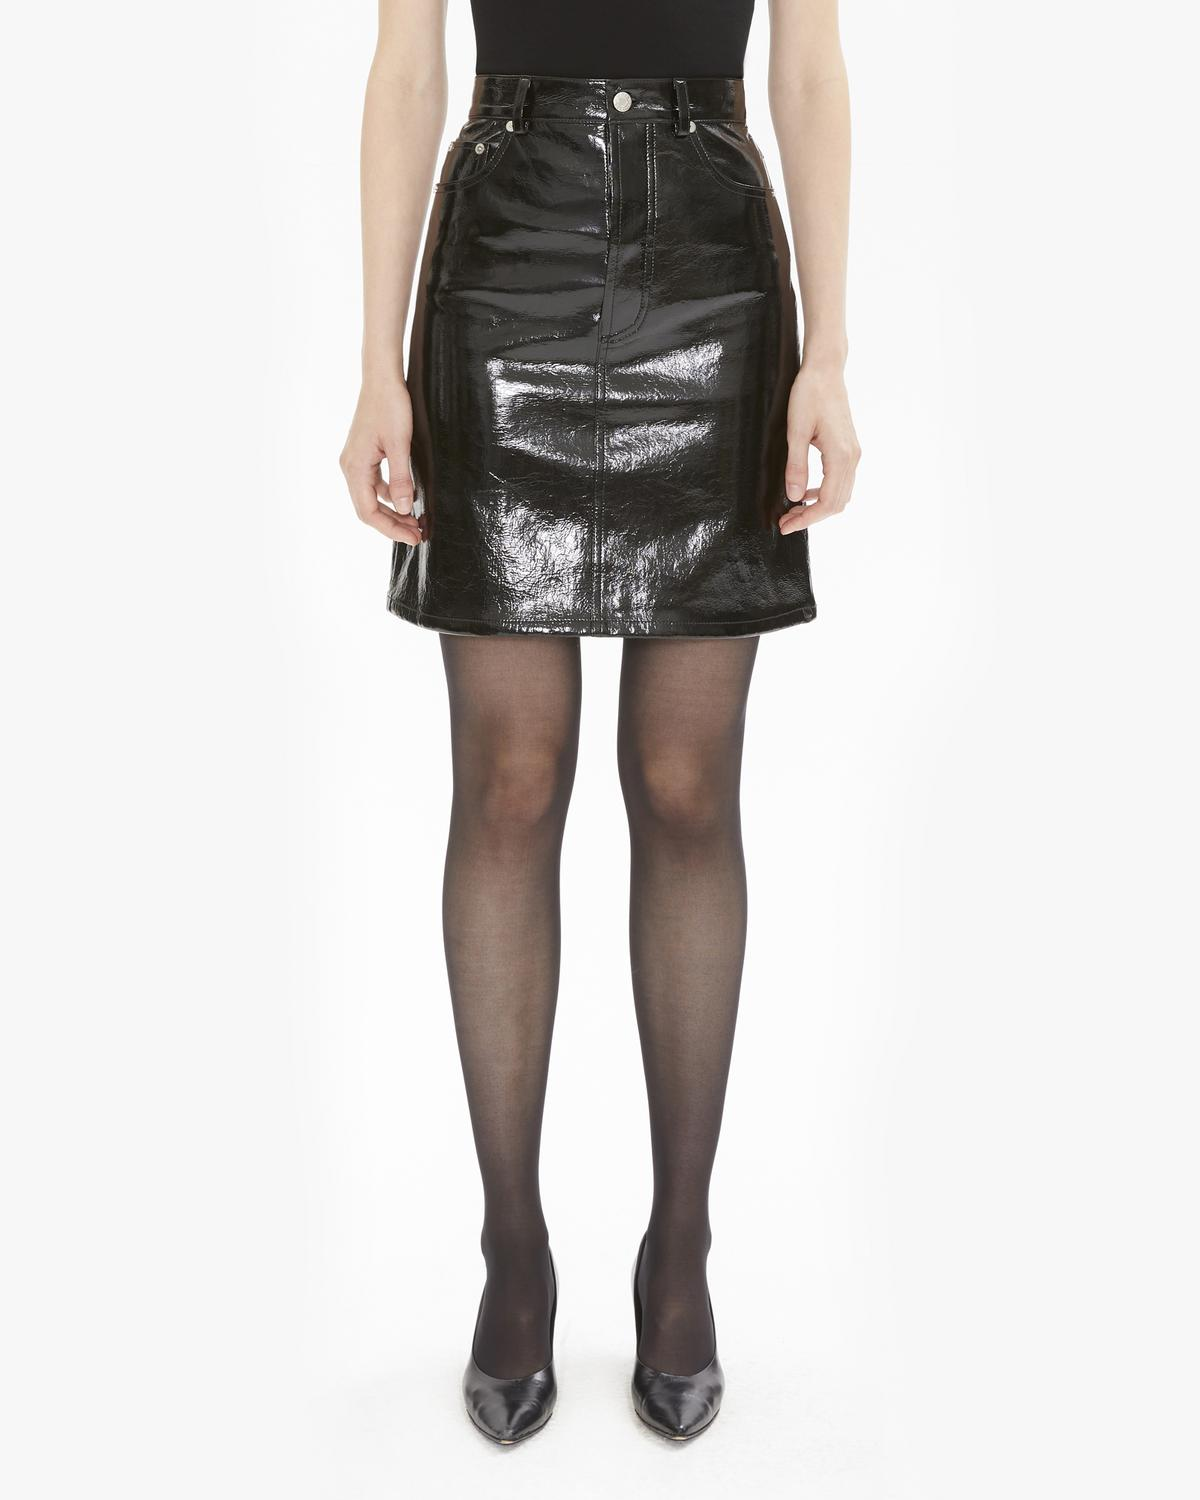 PATENT LEATHER FIVE POCKET SKIRT